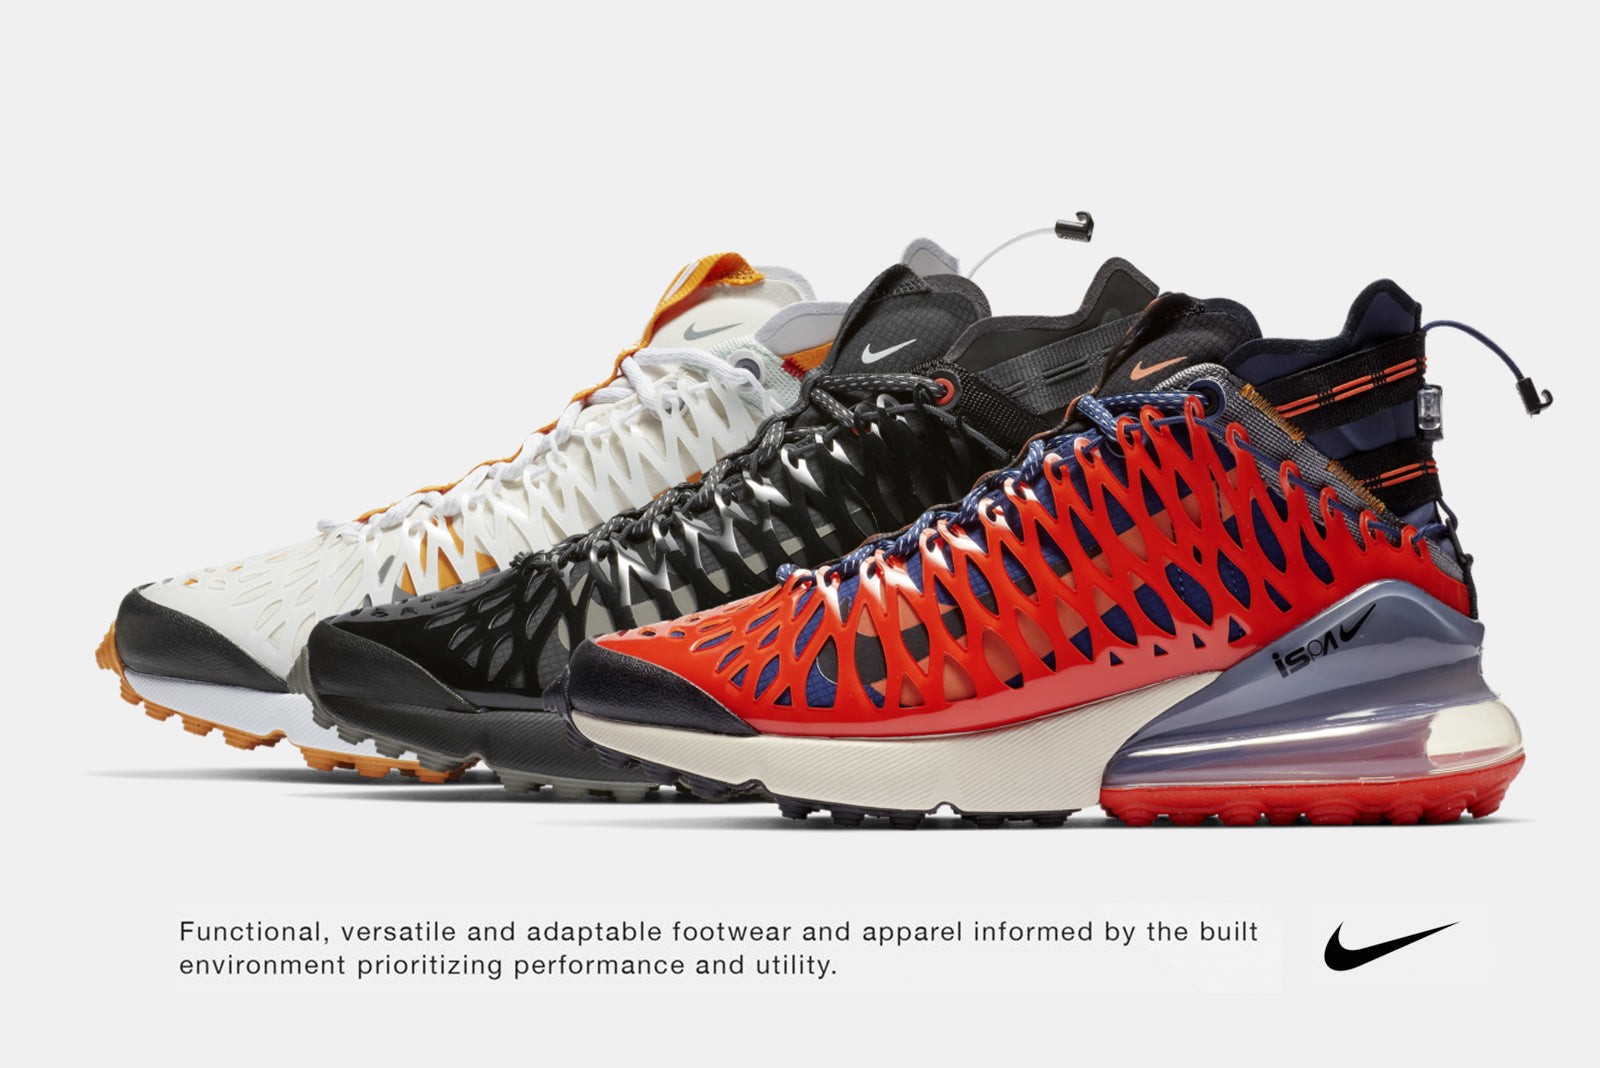 online store bc402 5378b Nike s forward thinking ISPA program makes a welcome return this January,  enlisting the Air Max 270. The lifestyle silhouette gains some serious tech  ...